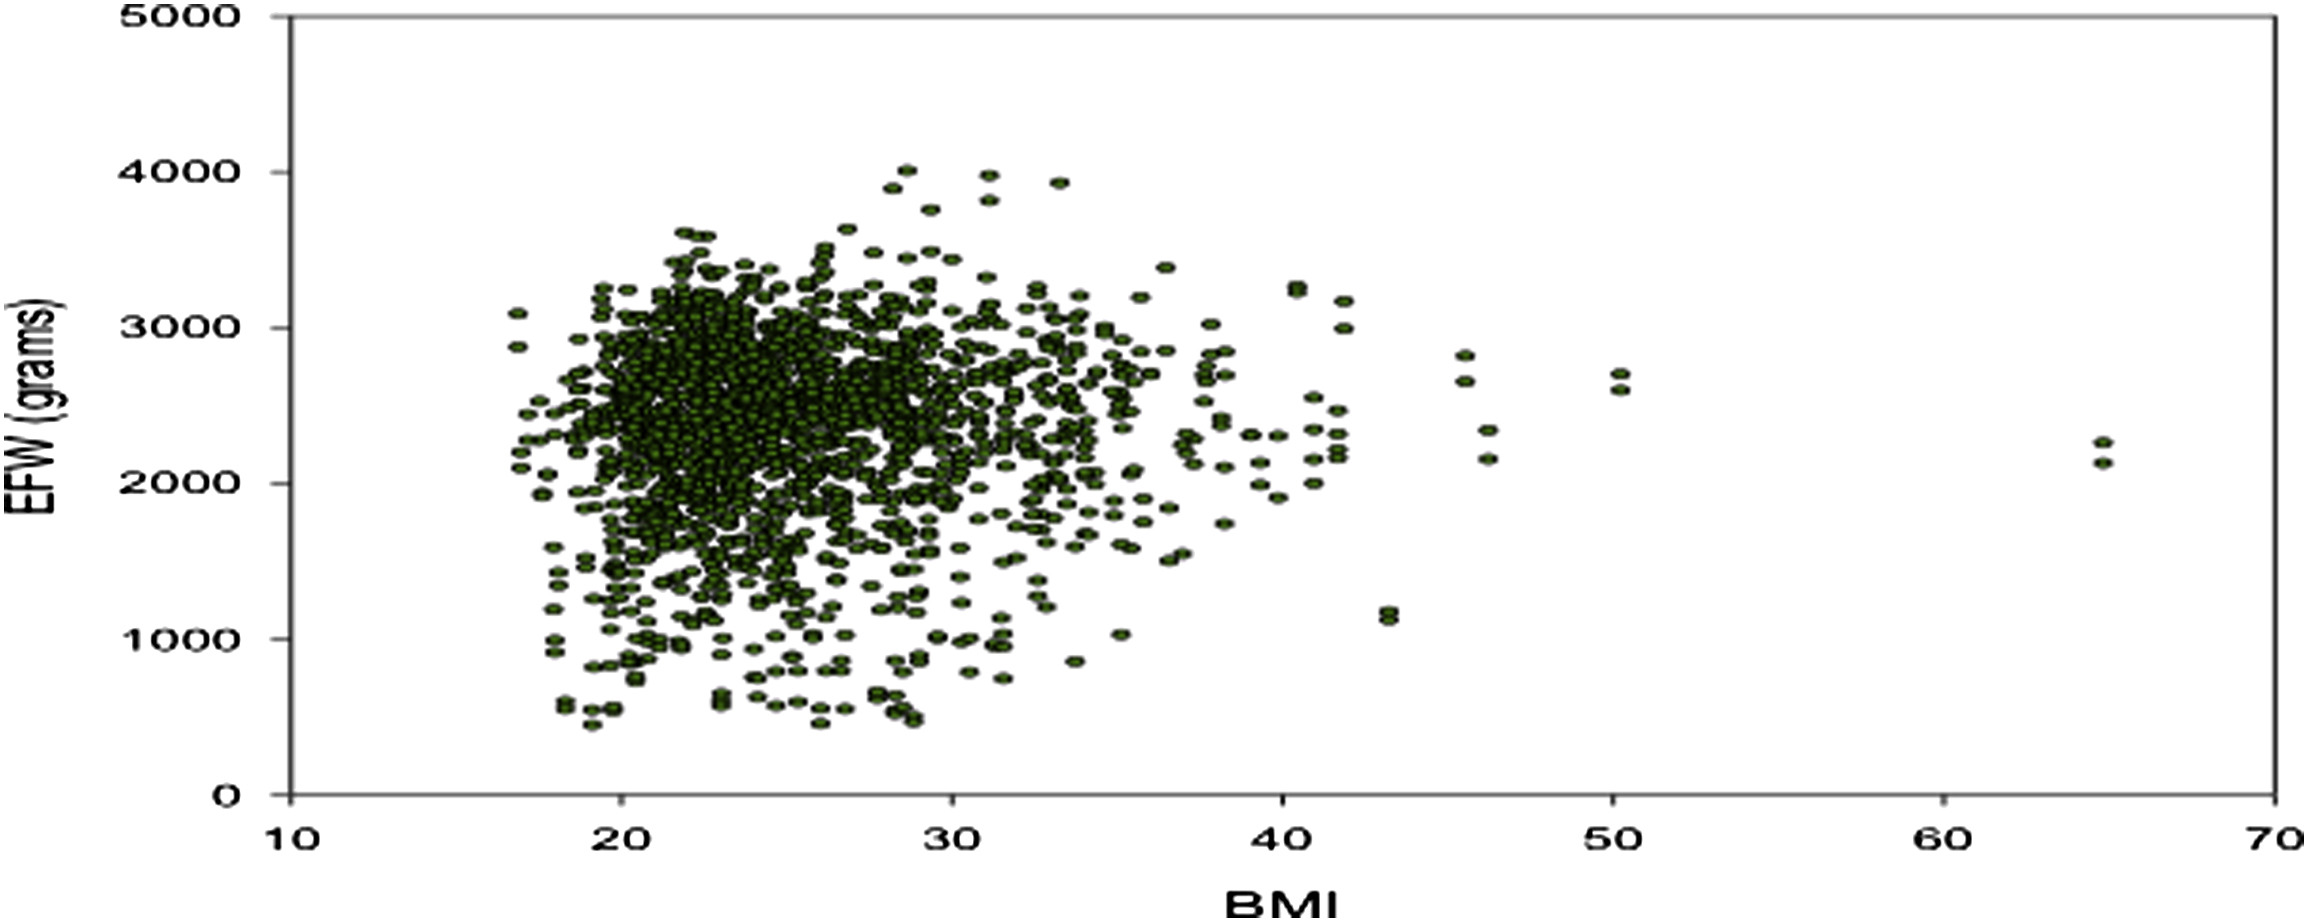 relationship of maternal body mass index and height to twinning